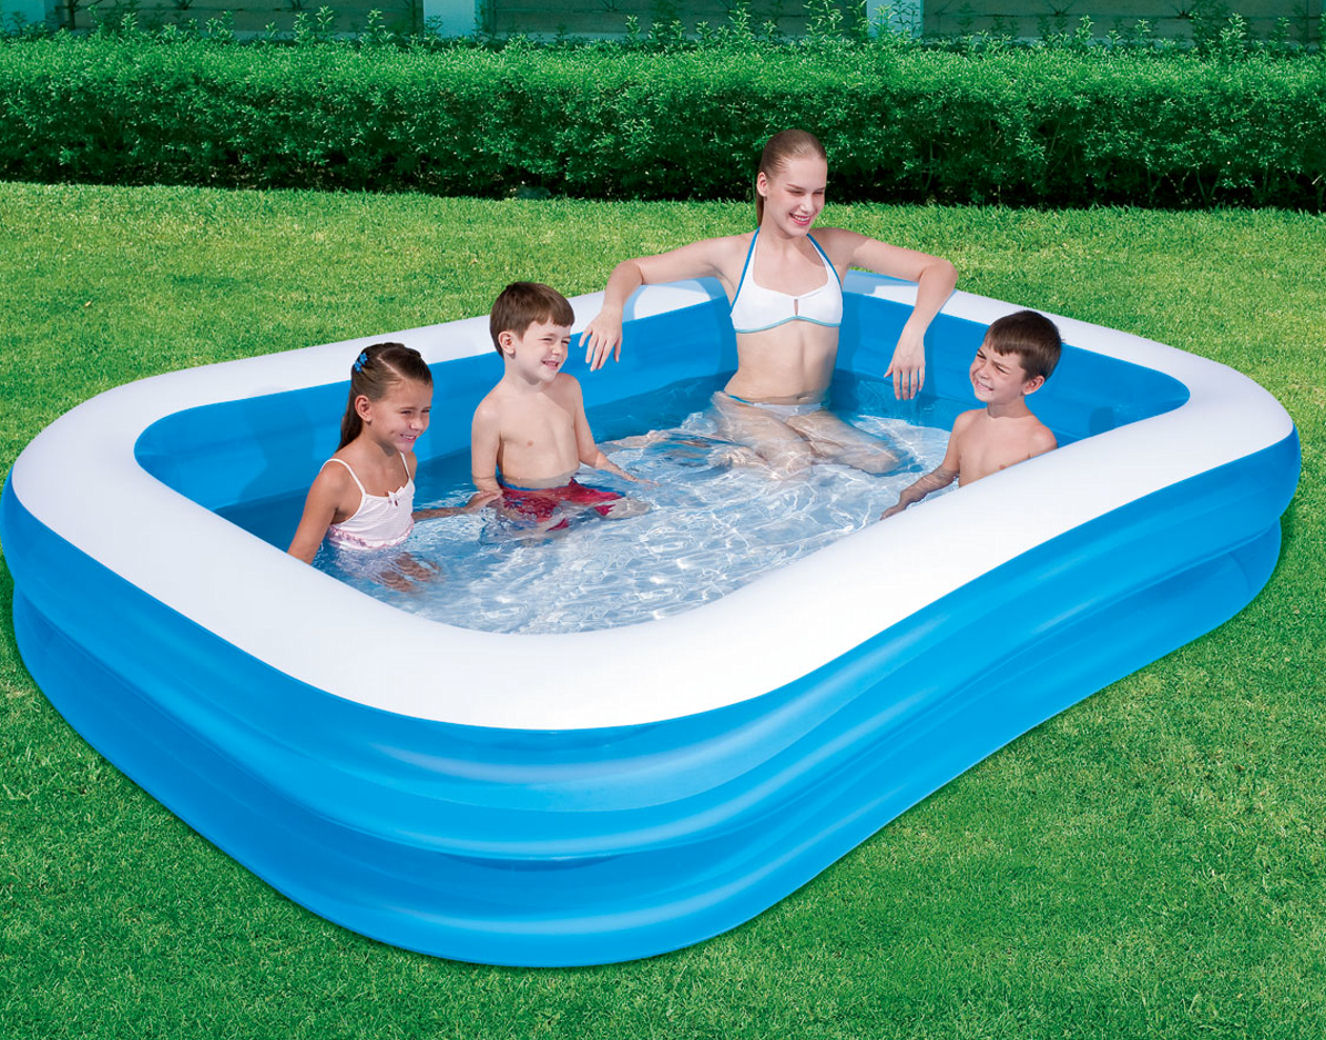 pools bestway blue rectangular family paddling pool 103 x 69 x 20 ramsdens direct. Black Bedroom Furniture Sets. Home Design Ideas